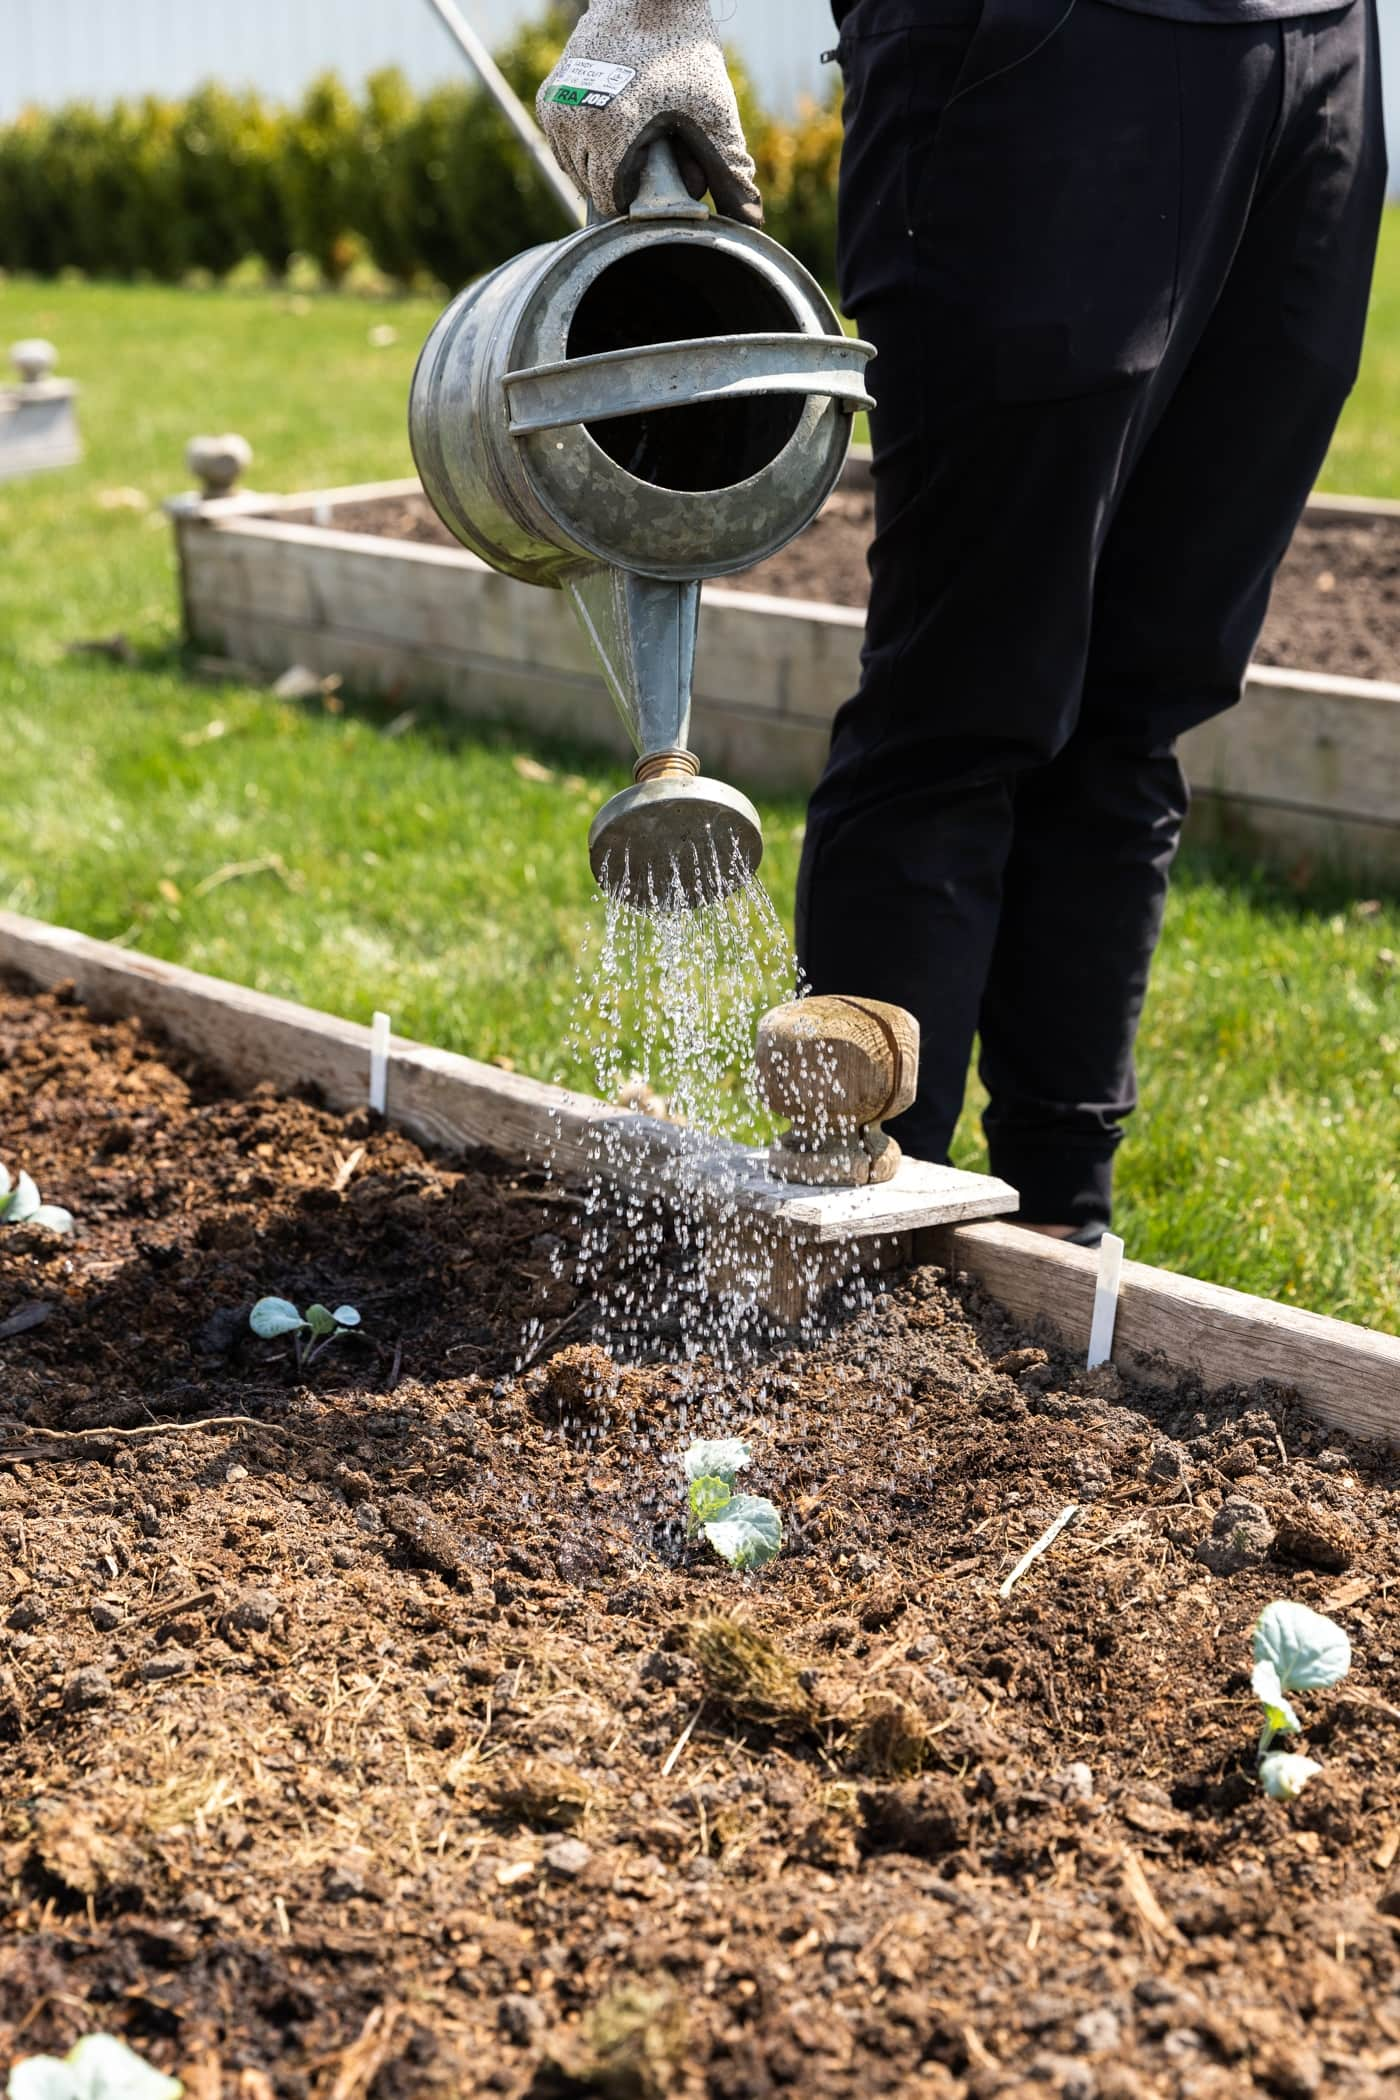 Hand watering small green plants in raised garden bed with green grass in background